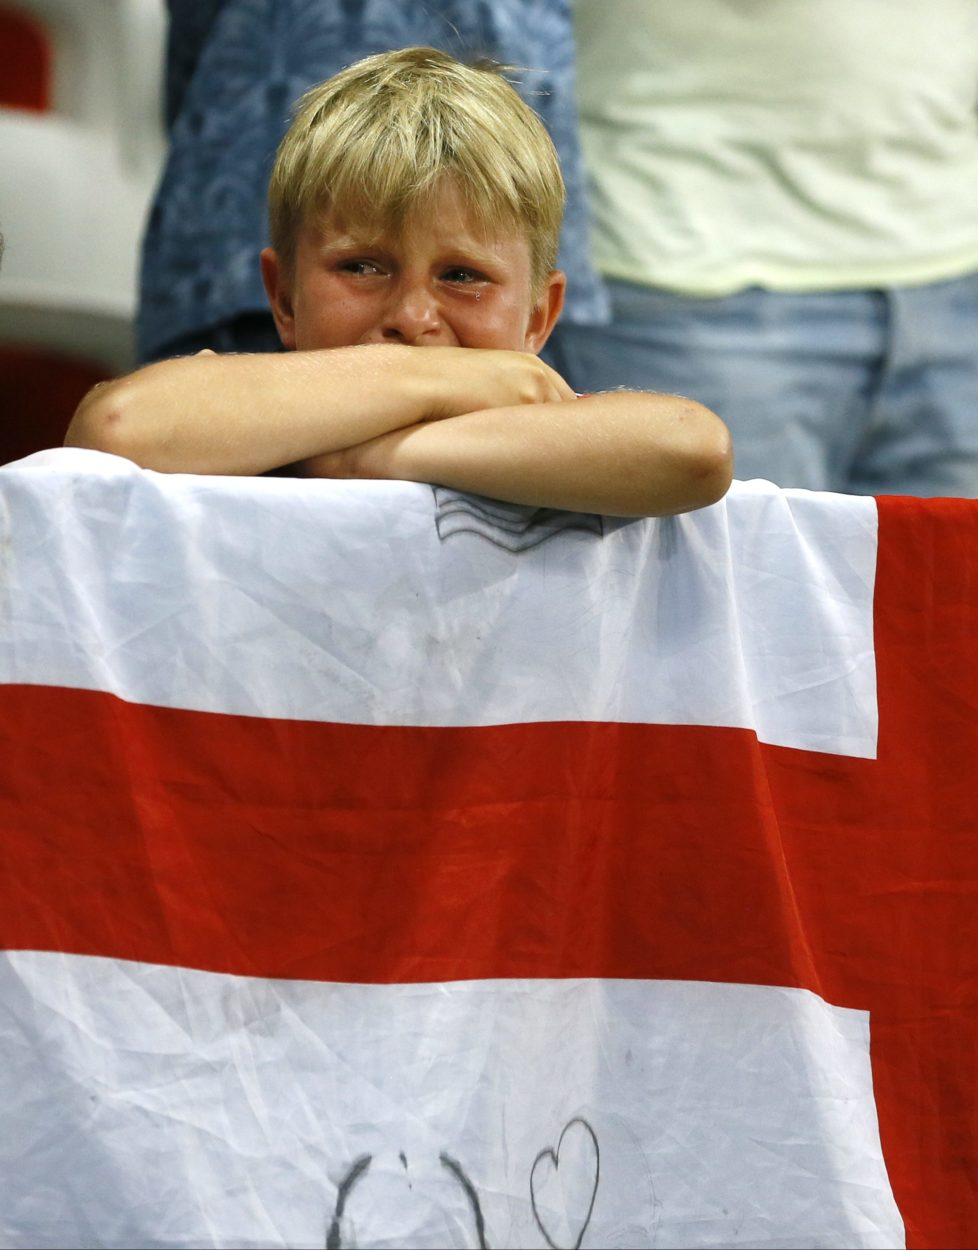 A young England fan cries at the end of the Euro 2016 round of 16 soccer match between England and Iceland, at the Allianz Riviera stadium in Nice, France, Monday, June 27, 2016. (AP Photo/Kirsty Wigglesworth)